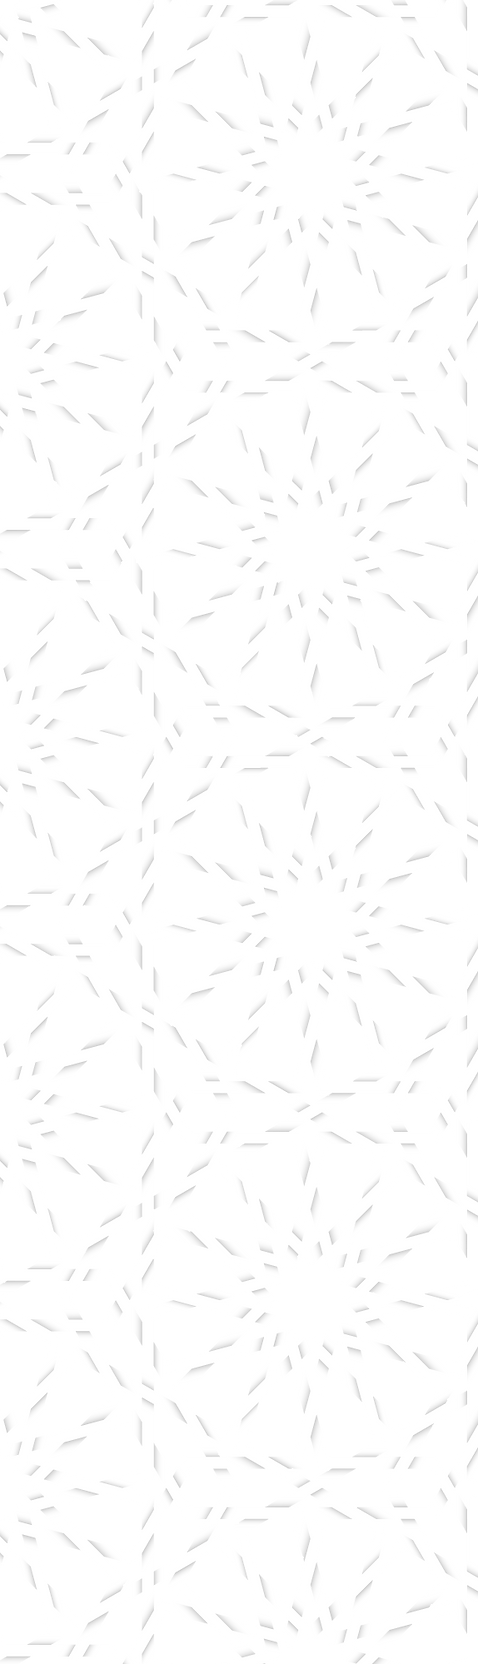 ISLAMIC-ART-BANNIERE.png